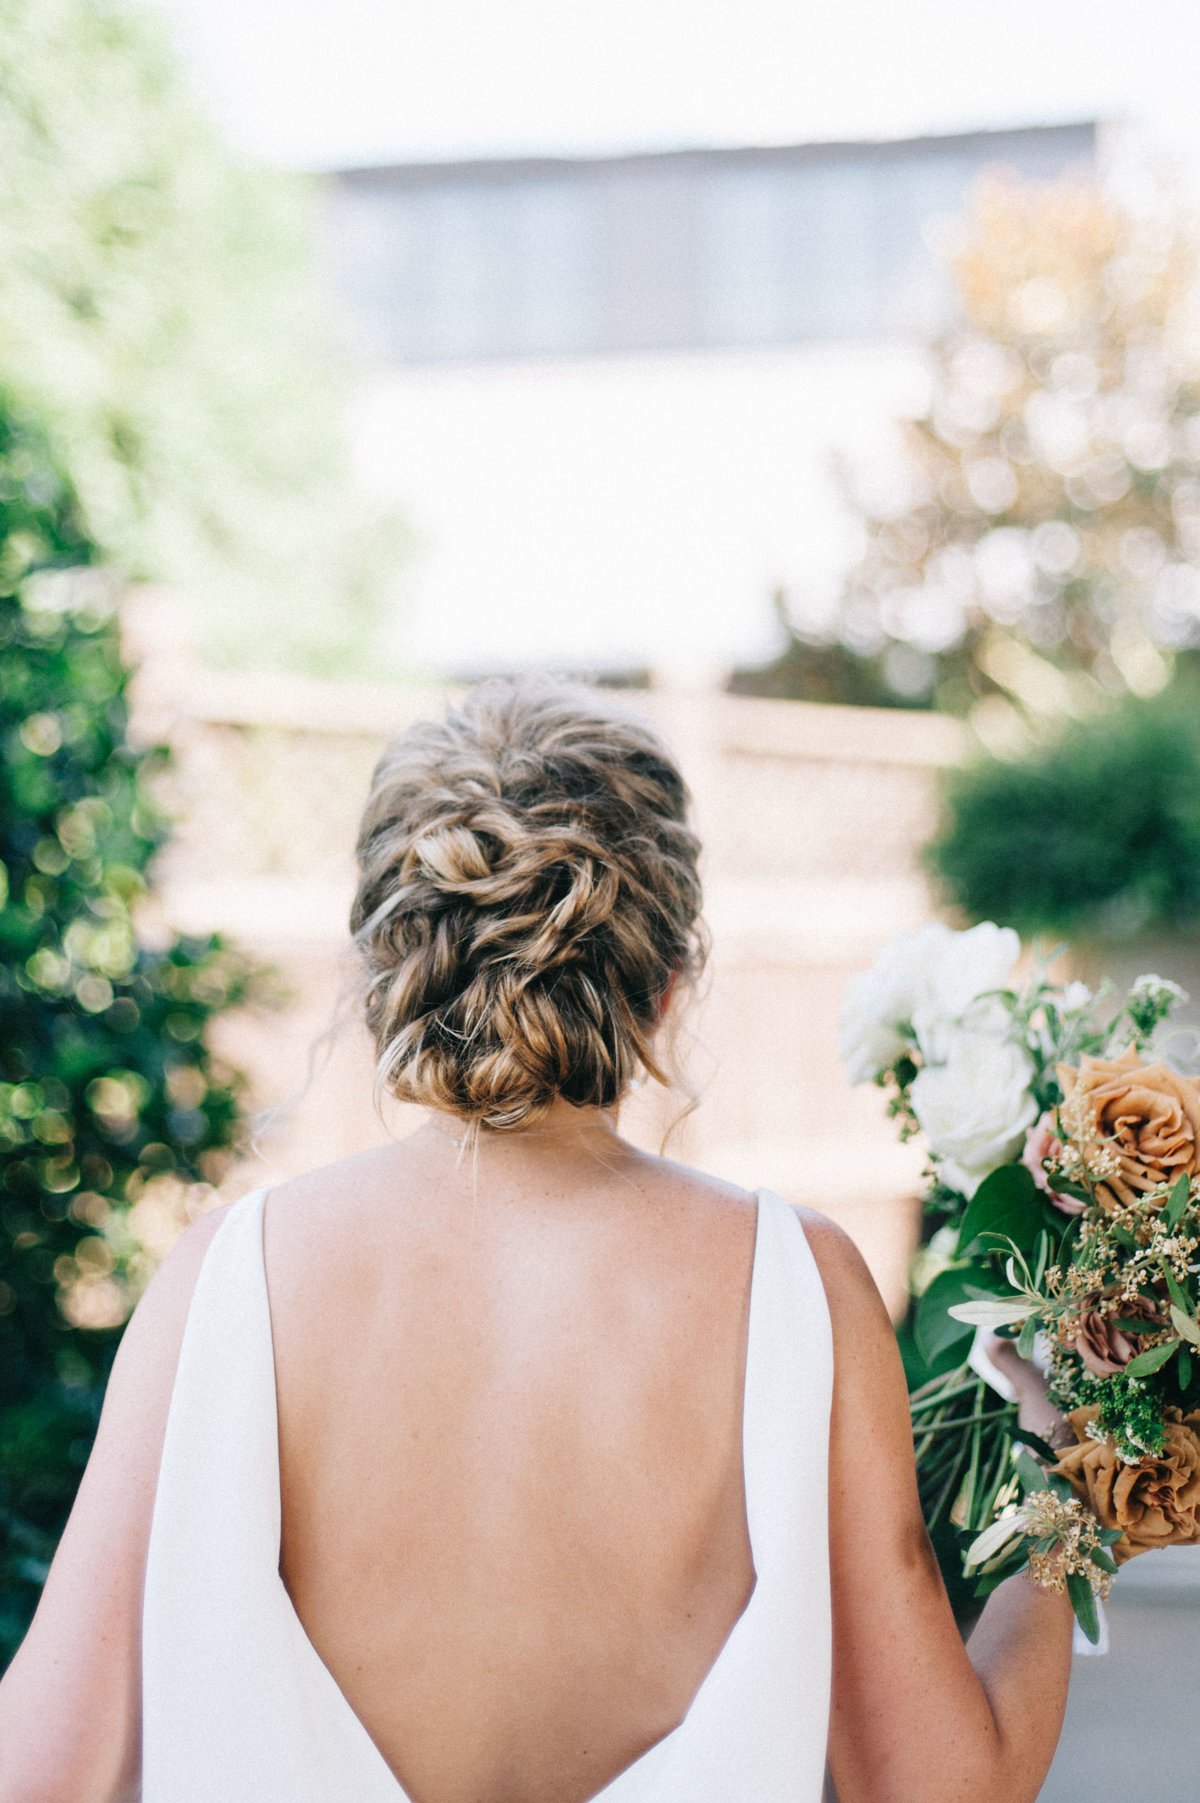 Stunning updo and open back wedding dress at a wedding in Birmingham, AL